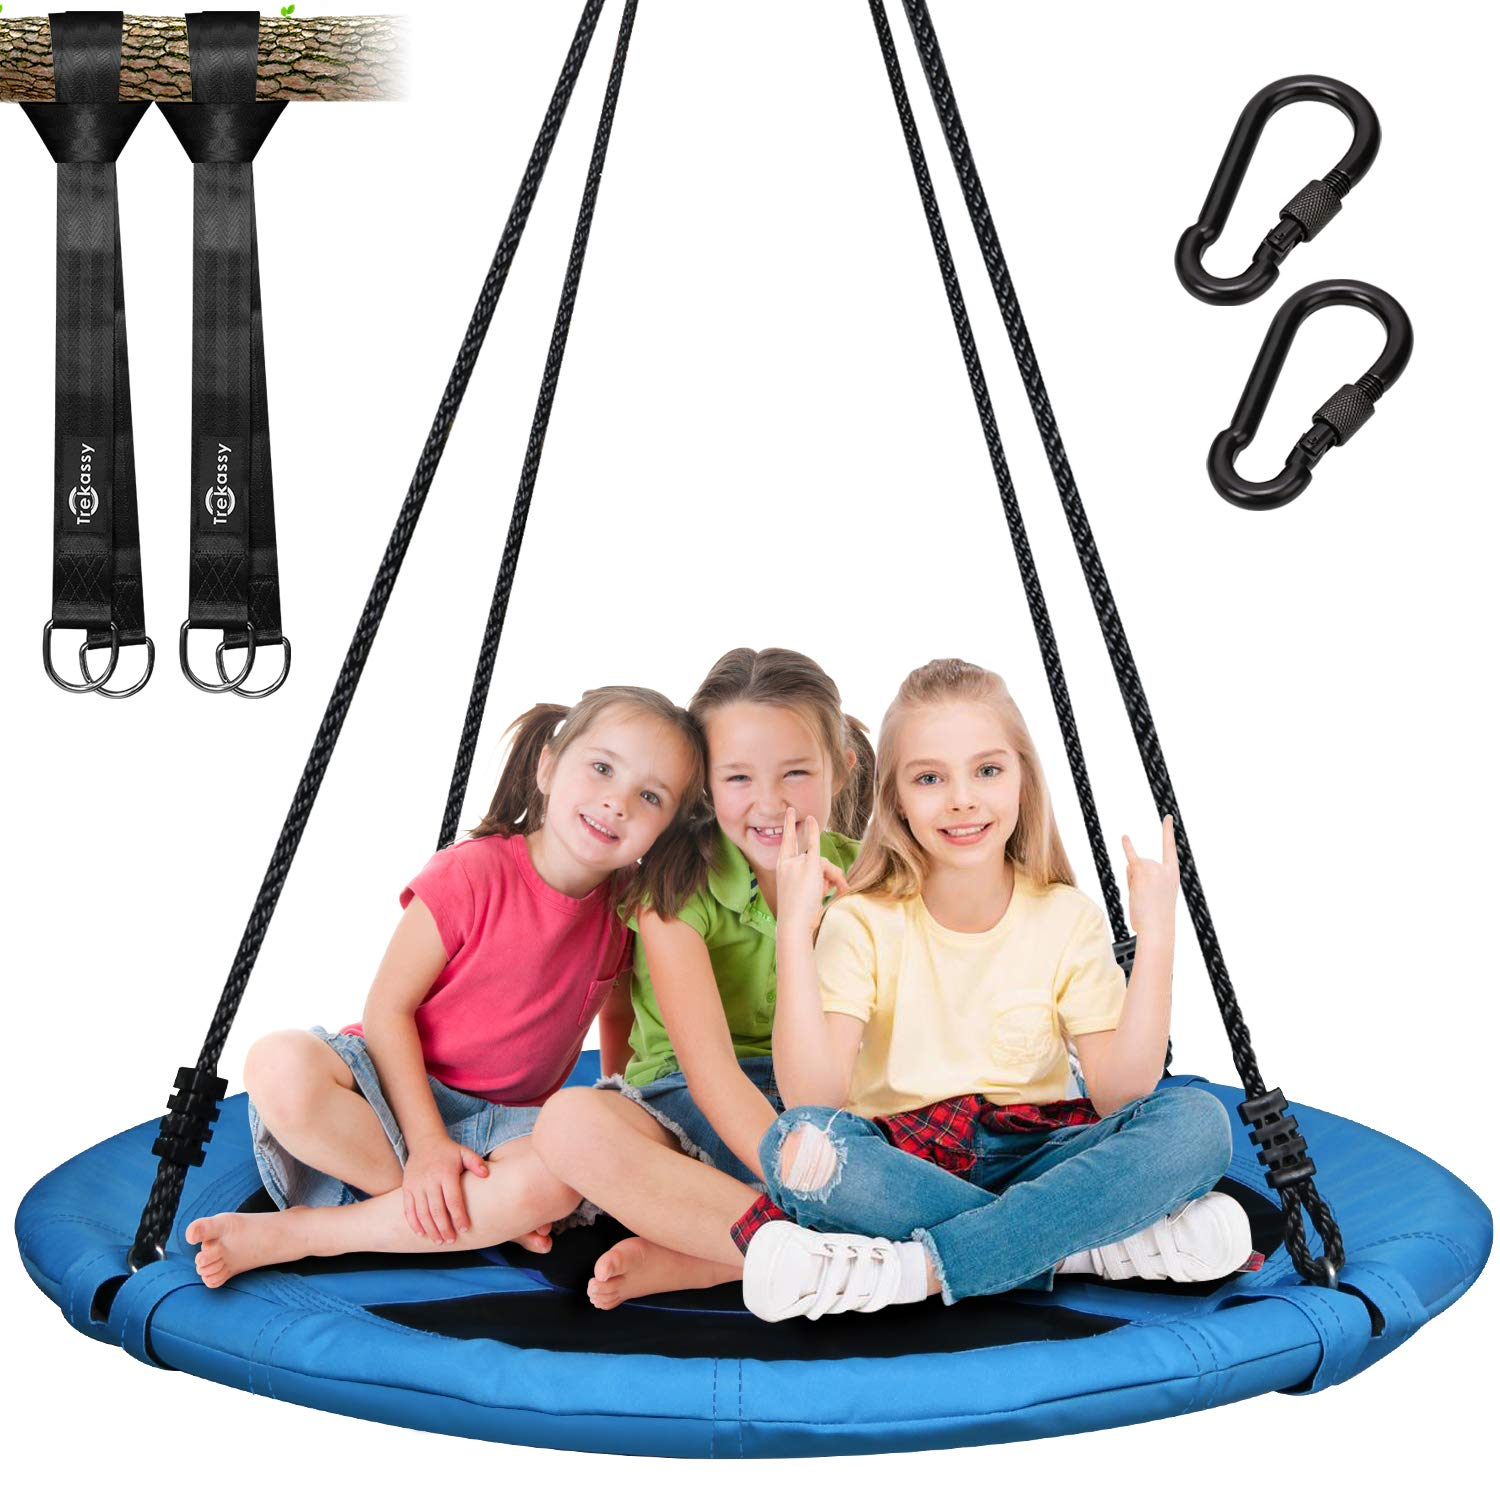 Trekassy 700lb Saucer Tree Swing for Kids Adults 40 Inch 900D Oxford Waterproof Frame Includes 2 Tree Hanging Straps by Trekassy